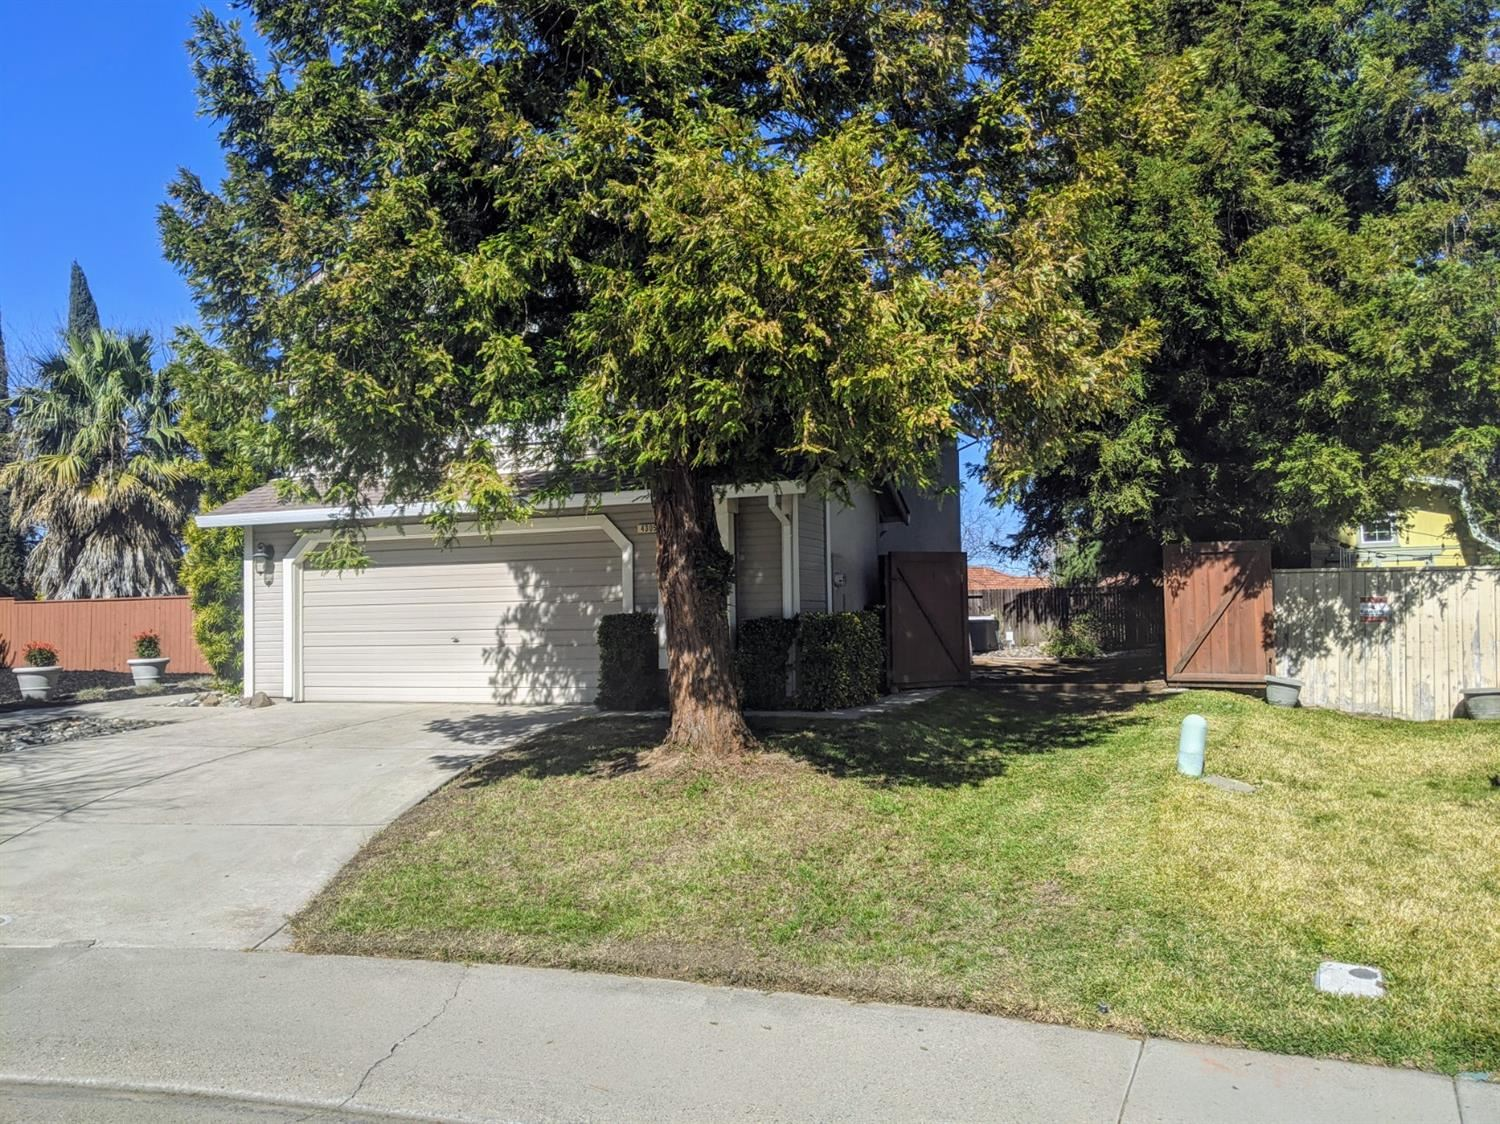 Photo of 4305 Hartlepool Way, Antelope, CA 95843 (MLS # 221010593)